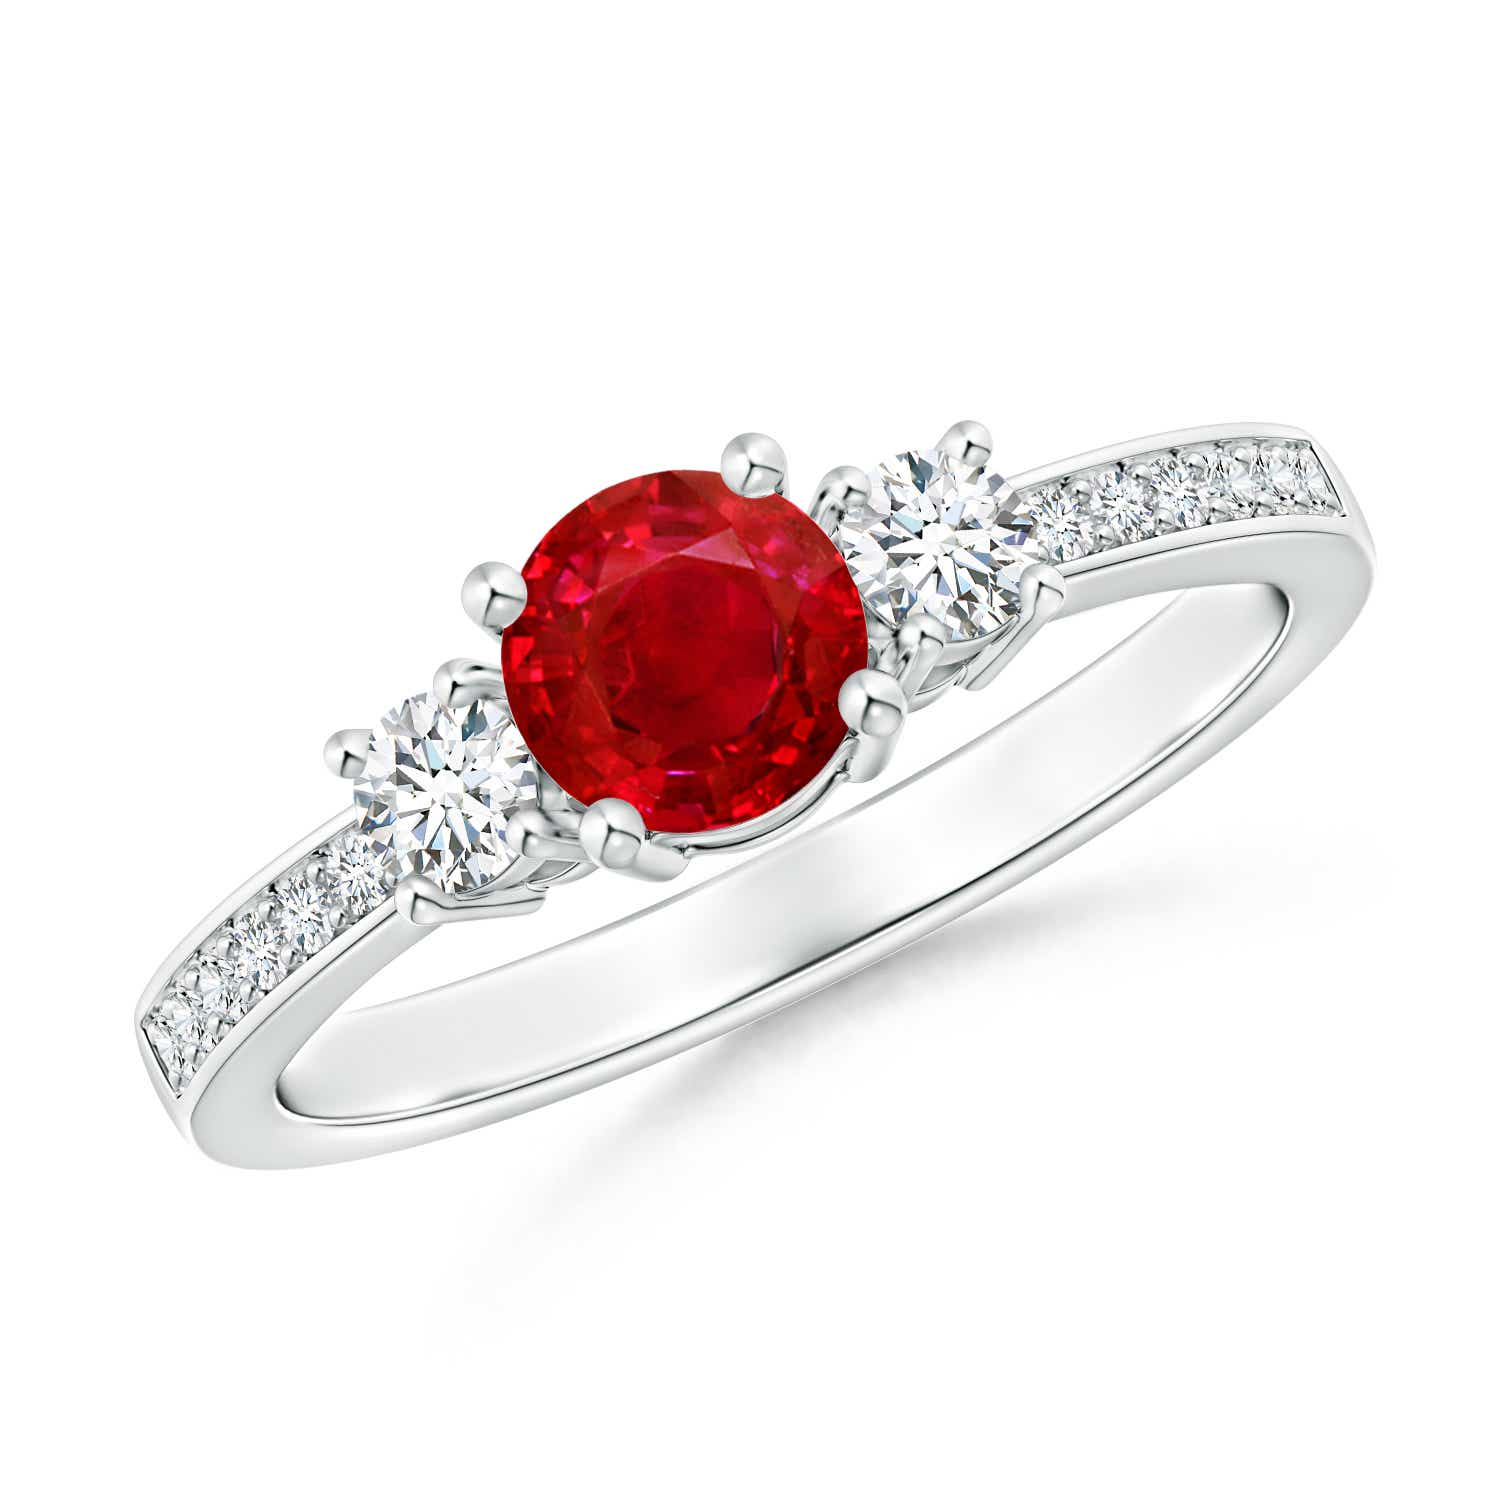 Angara Three Stone Ruby and Diamond Ring in 14K Rose Gold u8m5x0a